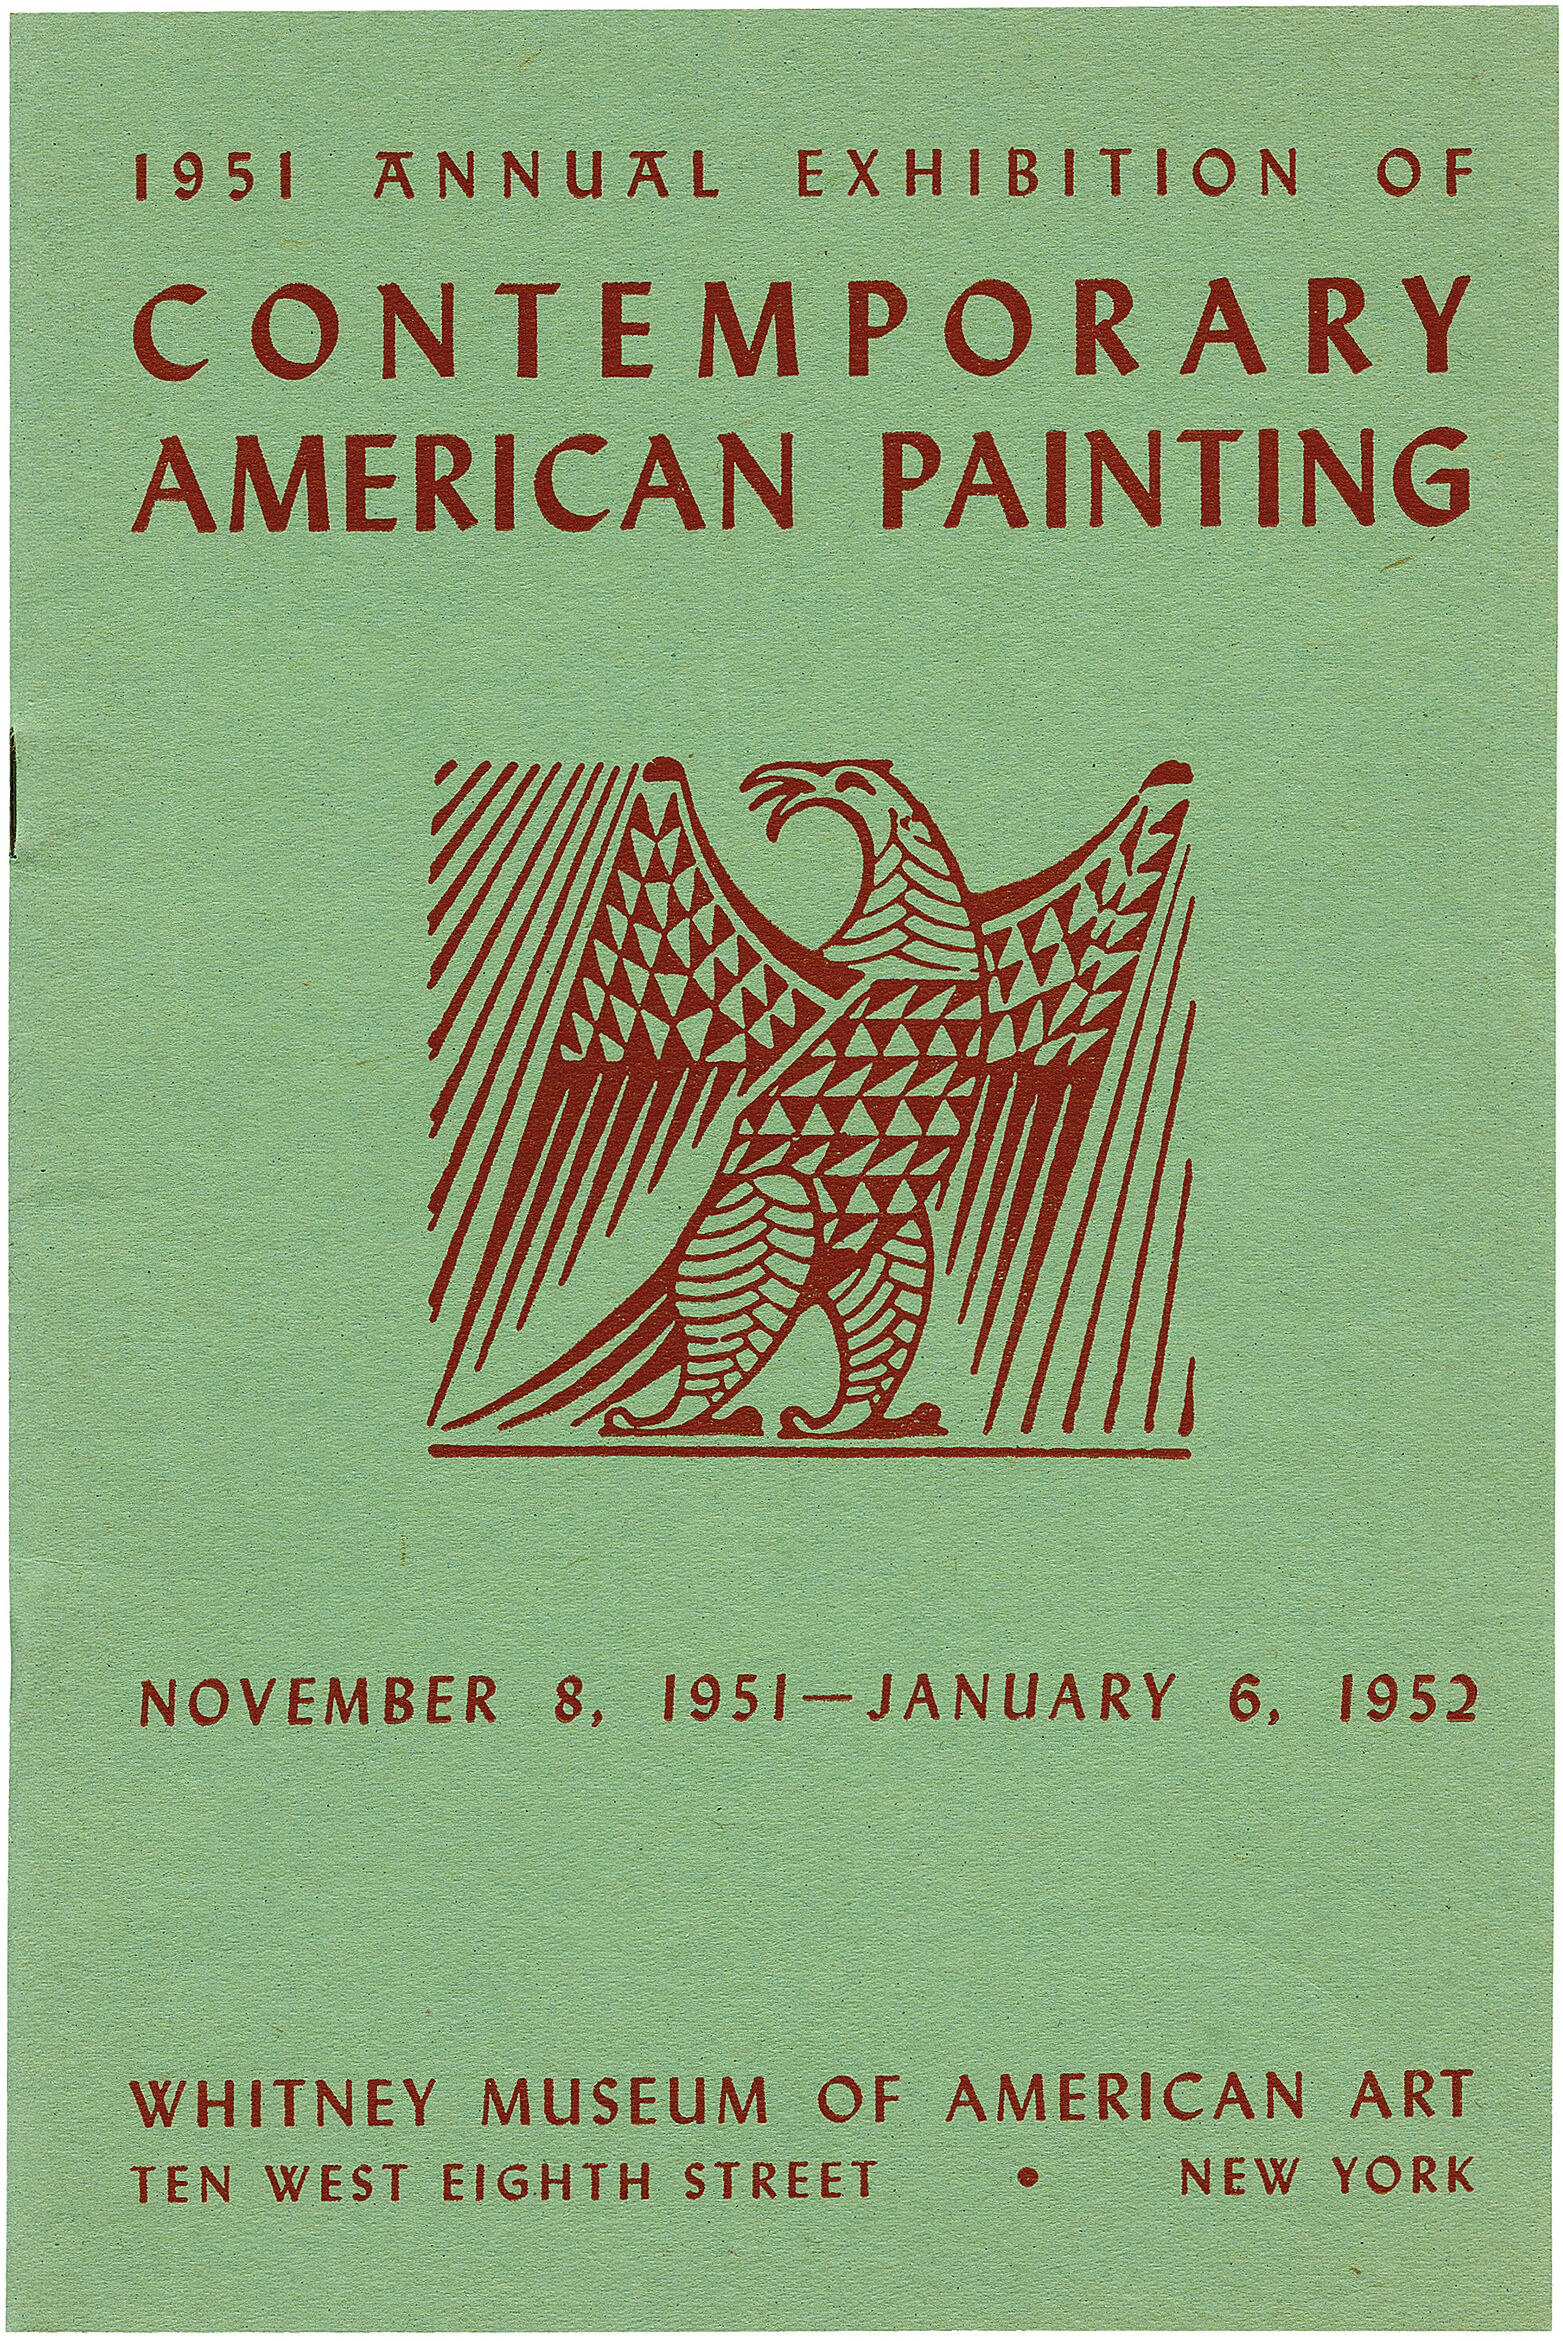 Cover for 1951 Annual Exhibition of Contemporary American Painting catalogue